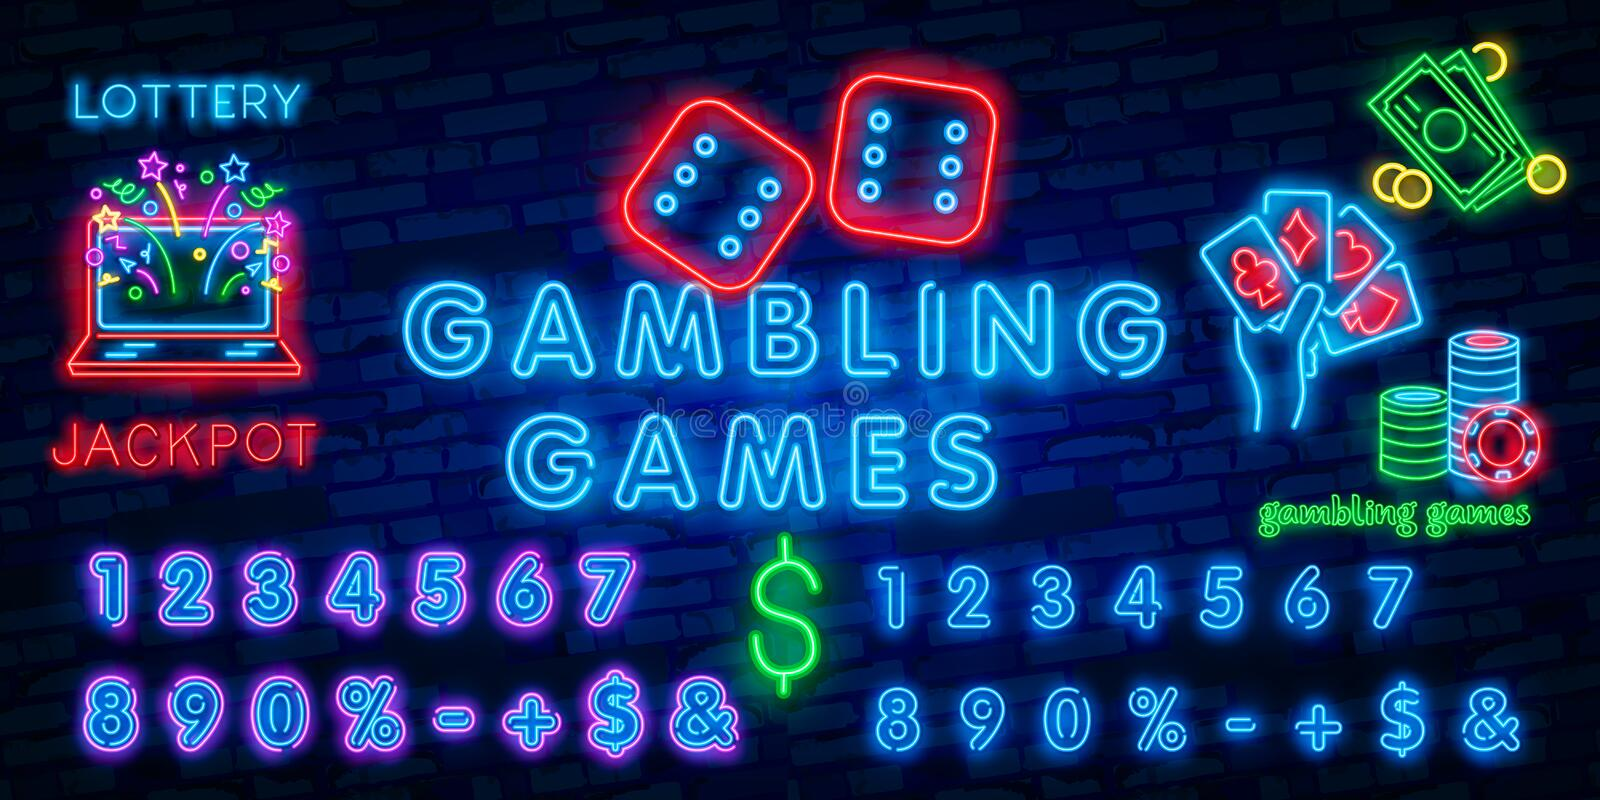 Neon casino sign. Poker, blackjack card suits, spade diamond heart club. Vintage Las Vegas glowing singage banner advertising stock illustration